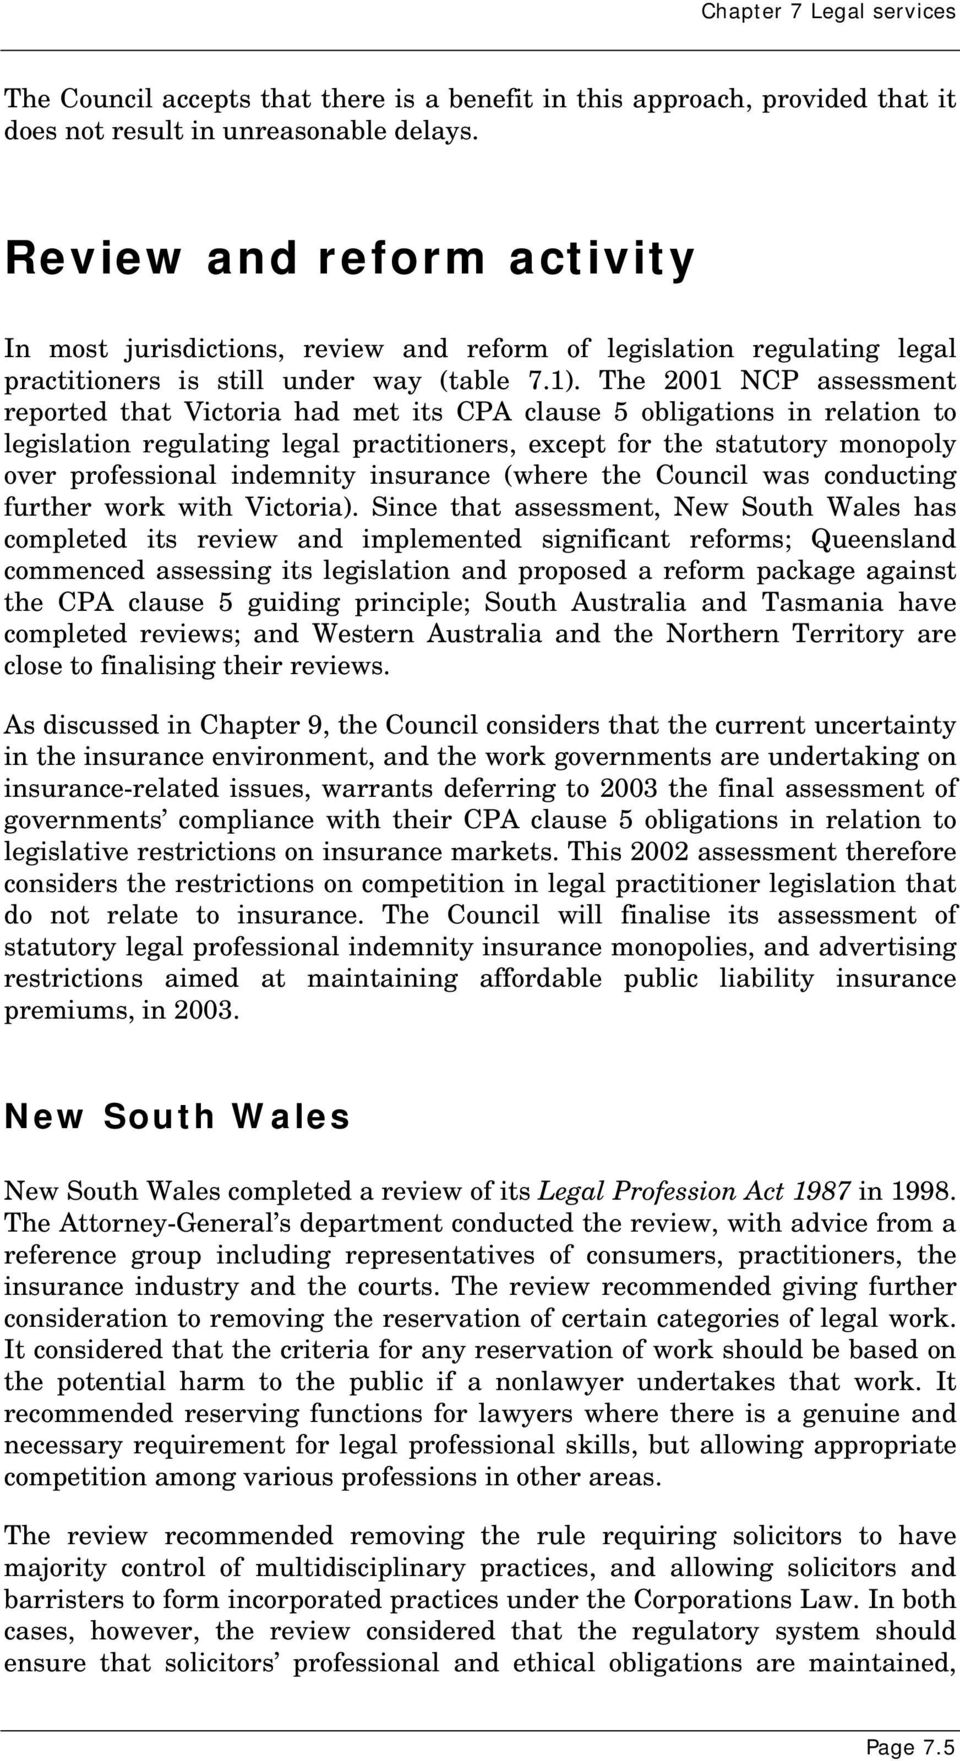 The 2001 NCP assessment reported that Victoria had met its CPA clause 5 obligations in relation to legislation regulating legal practitioners, except for the statutory monopoly over professional